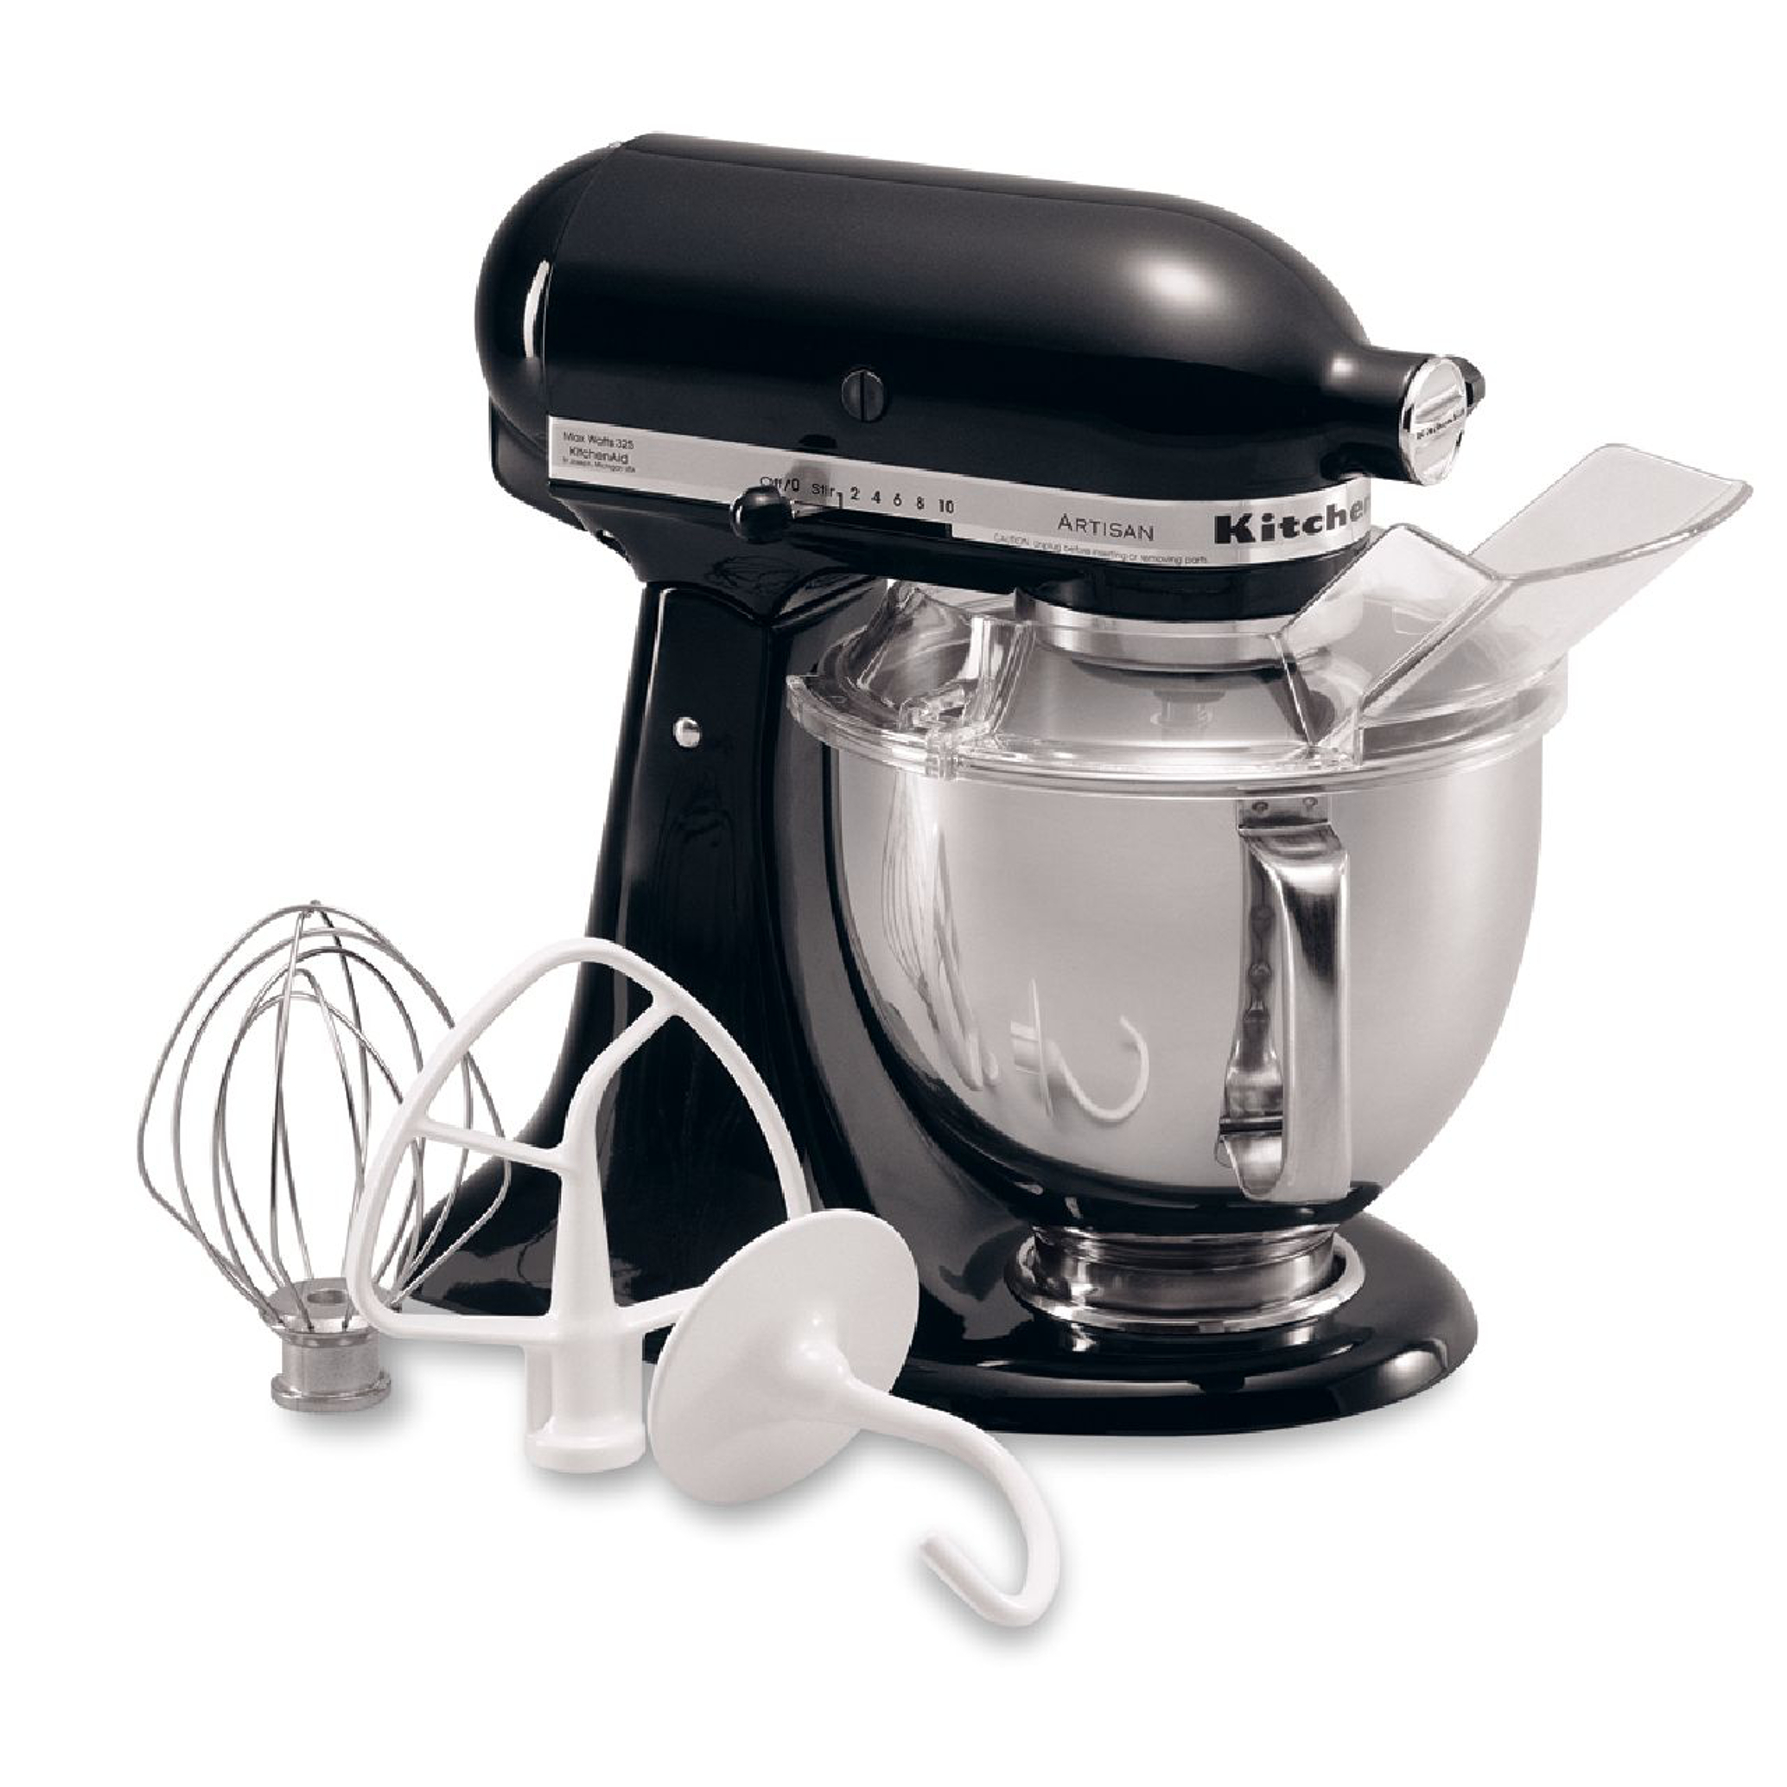 KitchenAid KSM150PSOB Artisan® Series Onyx Black 5 Quart Stand Mixer